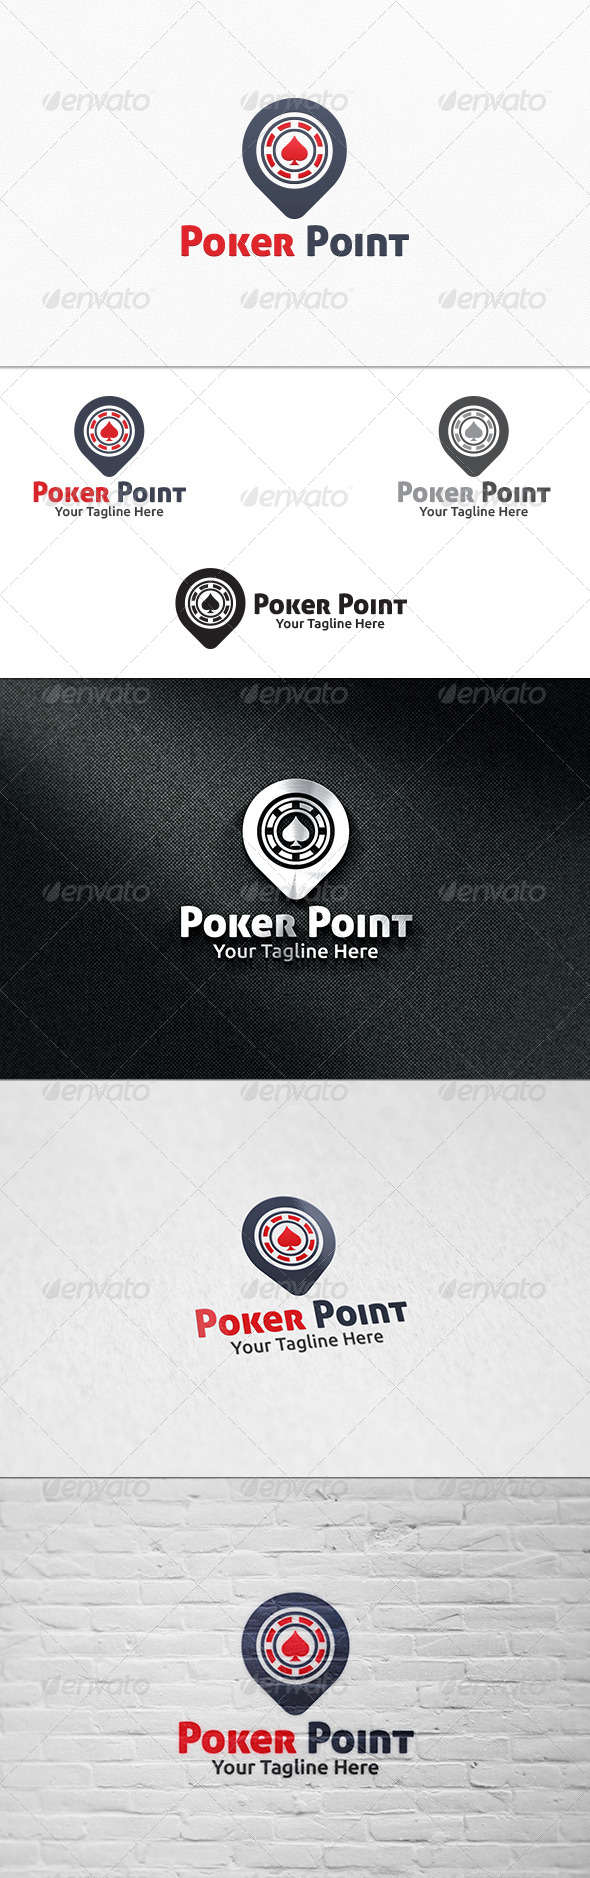 GraphicRiver Poker Point Logo Template 7403470